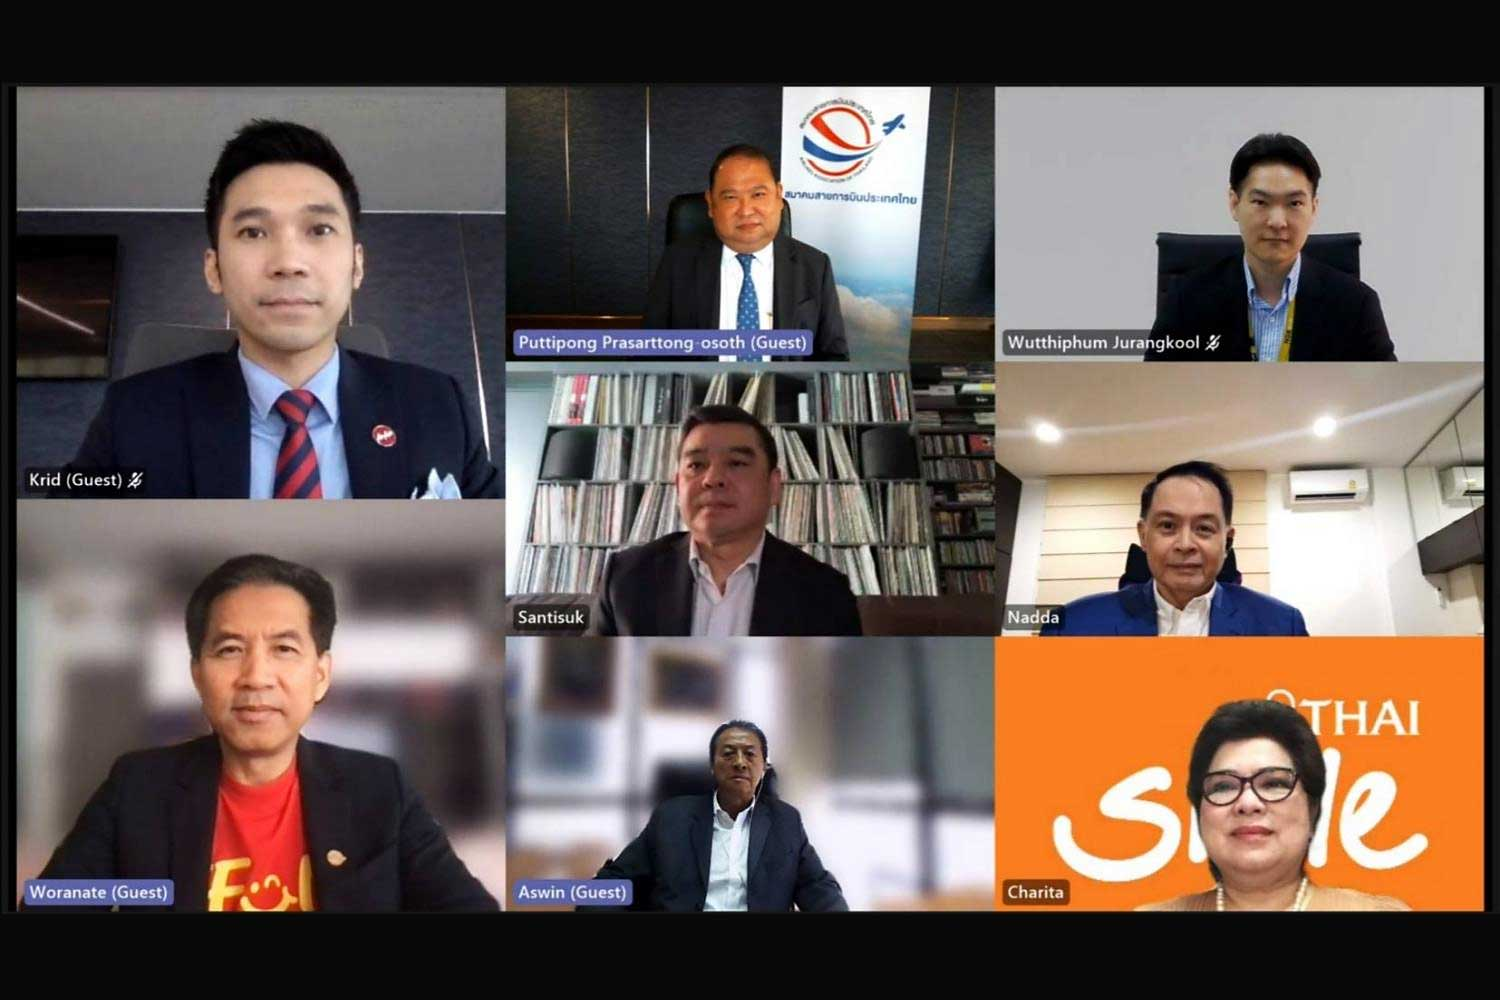 A screenshot captures senior executives of seven Thai airlines and the moderator (top left) during a virtual press conference held on Wednesday.